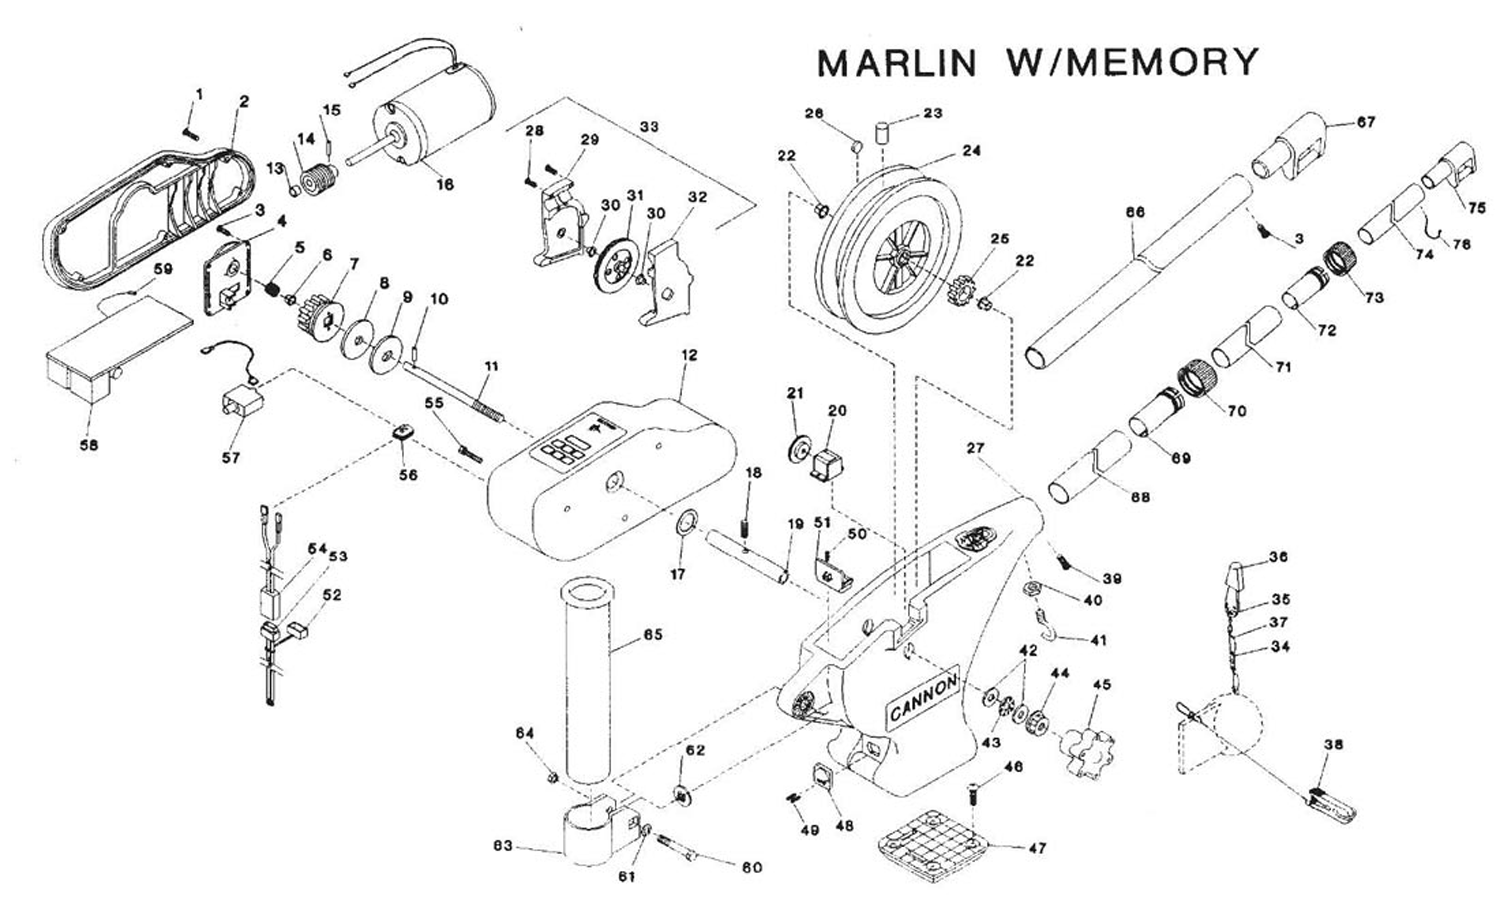 order cannon marlin with memory electric downrigger parts from fish307 com